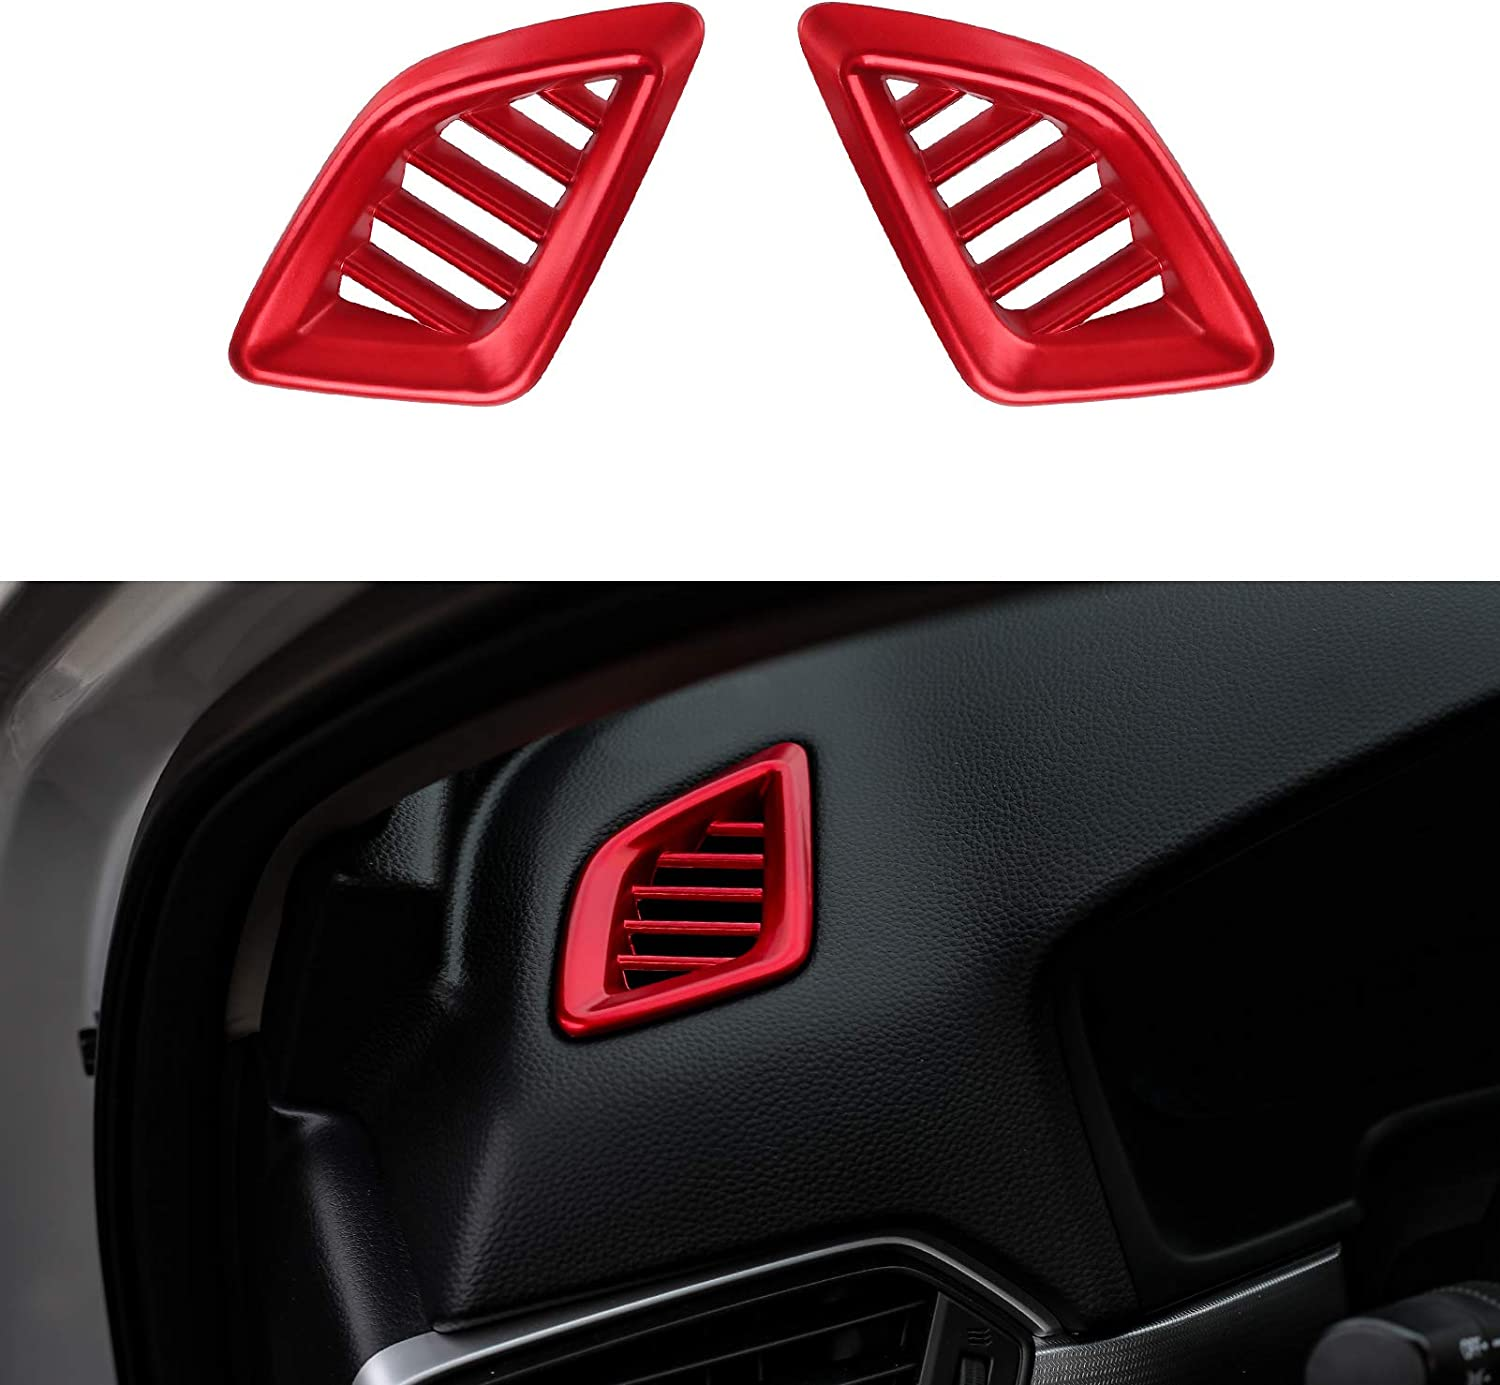 Thenice for 10th Gen Accord Dashboard Air Vent Decal Trims Wind Outlet Decoration Stickers for Honda Accord 2018 2019 2020 -Red